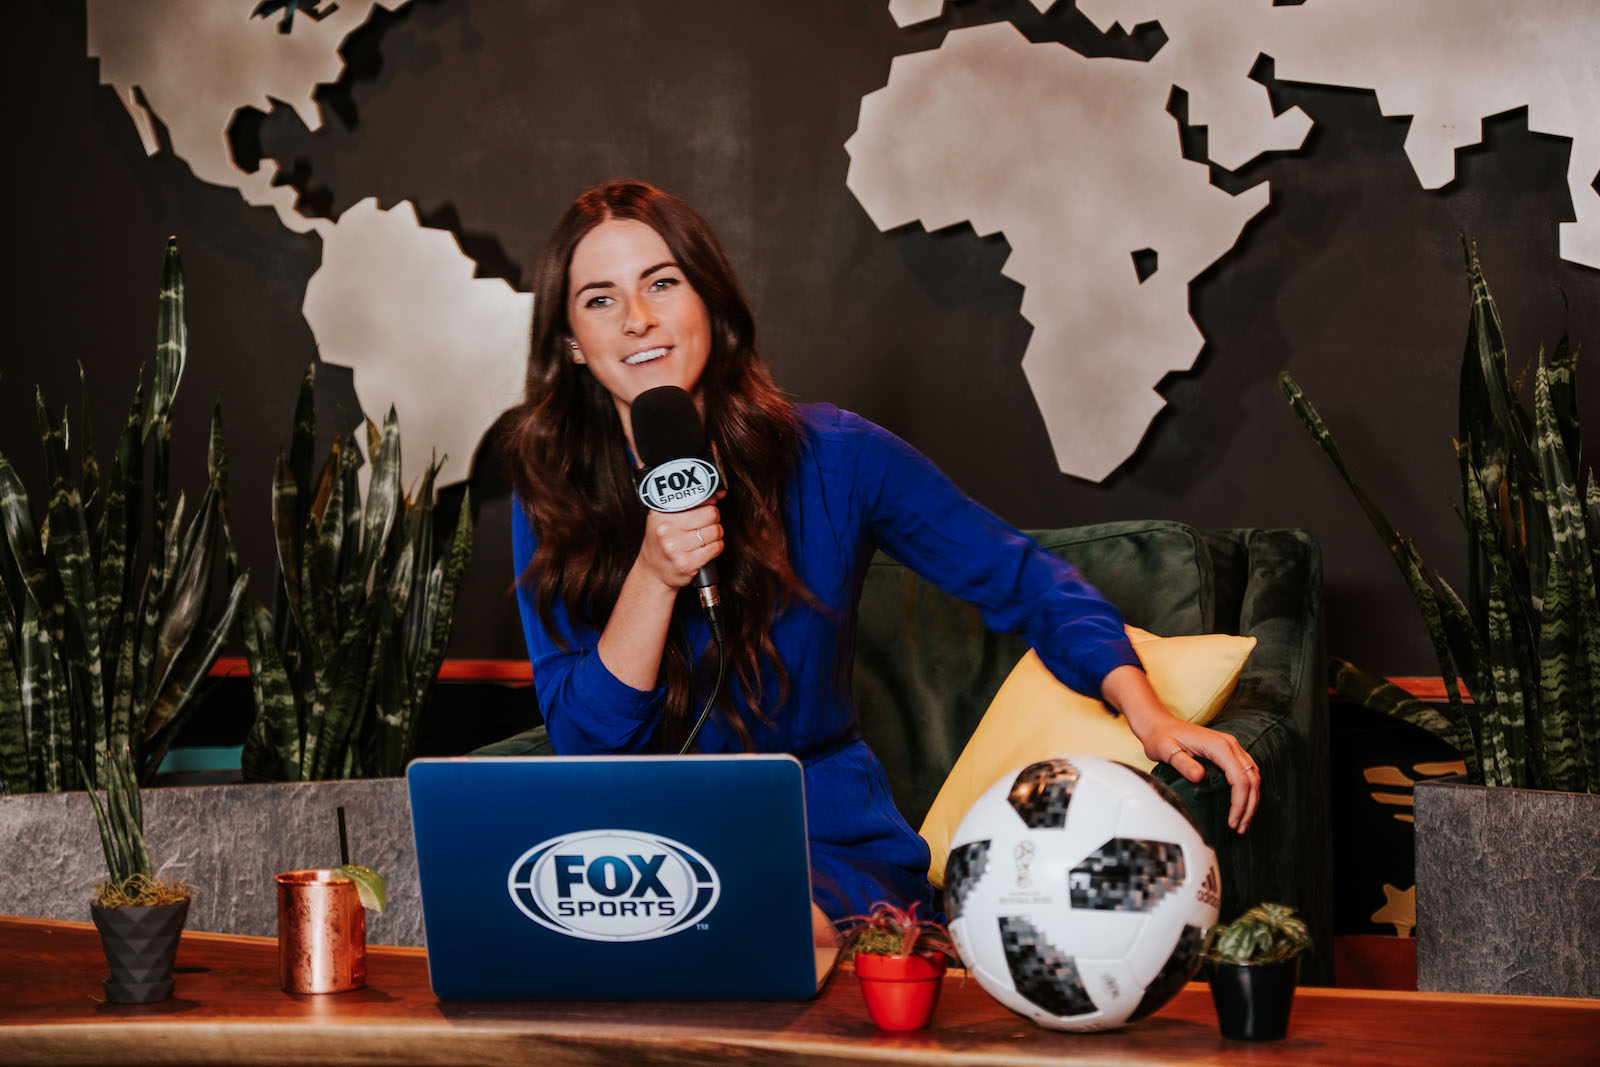 Top Fox World Cup 2018 - IMG_4148  Best Photo Reference_646663 .jpg